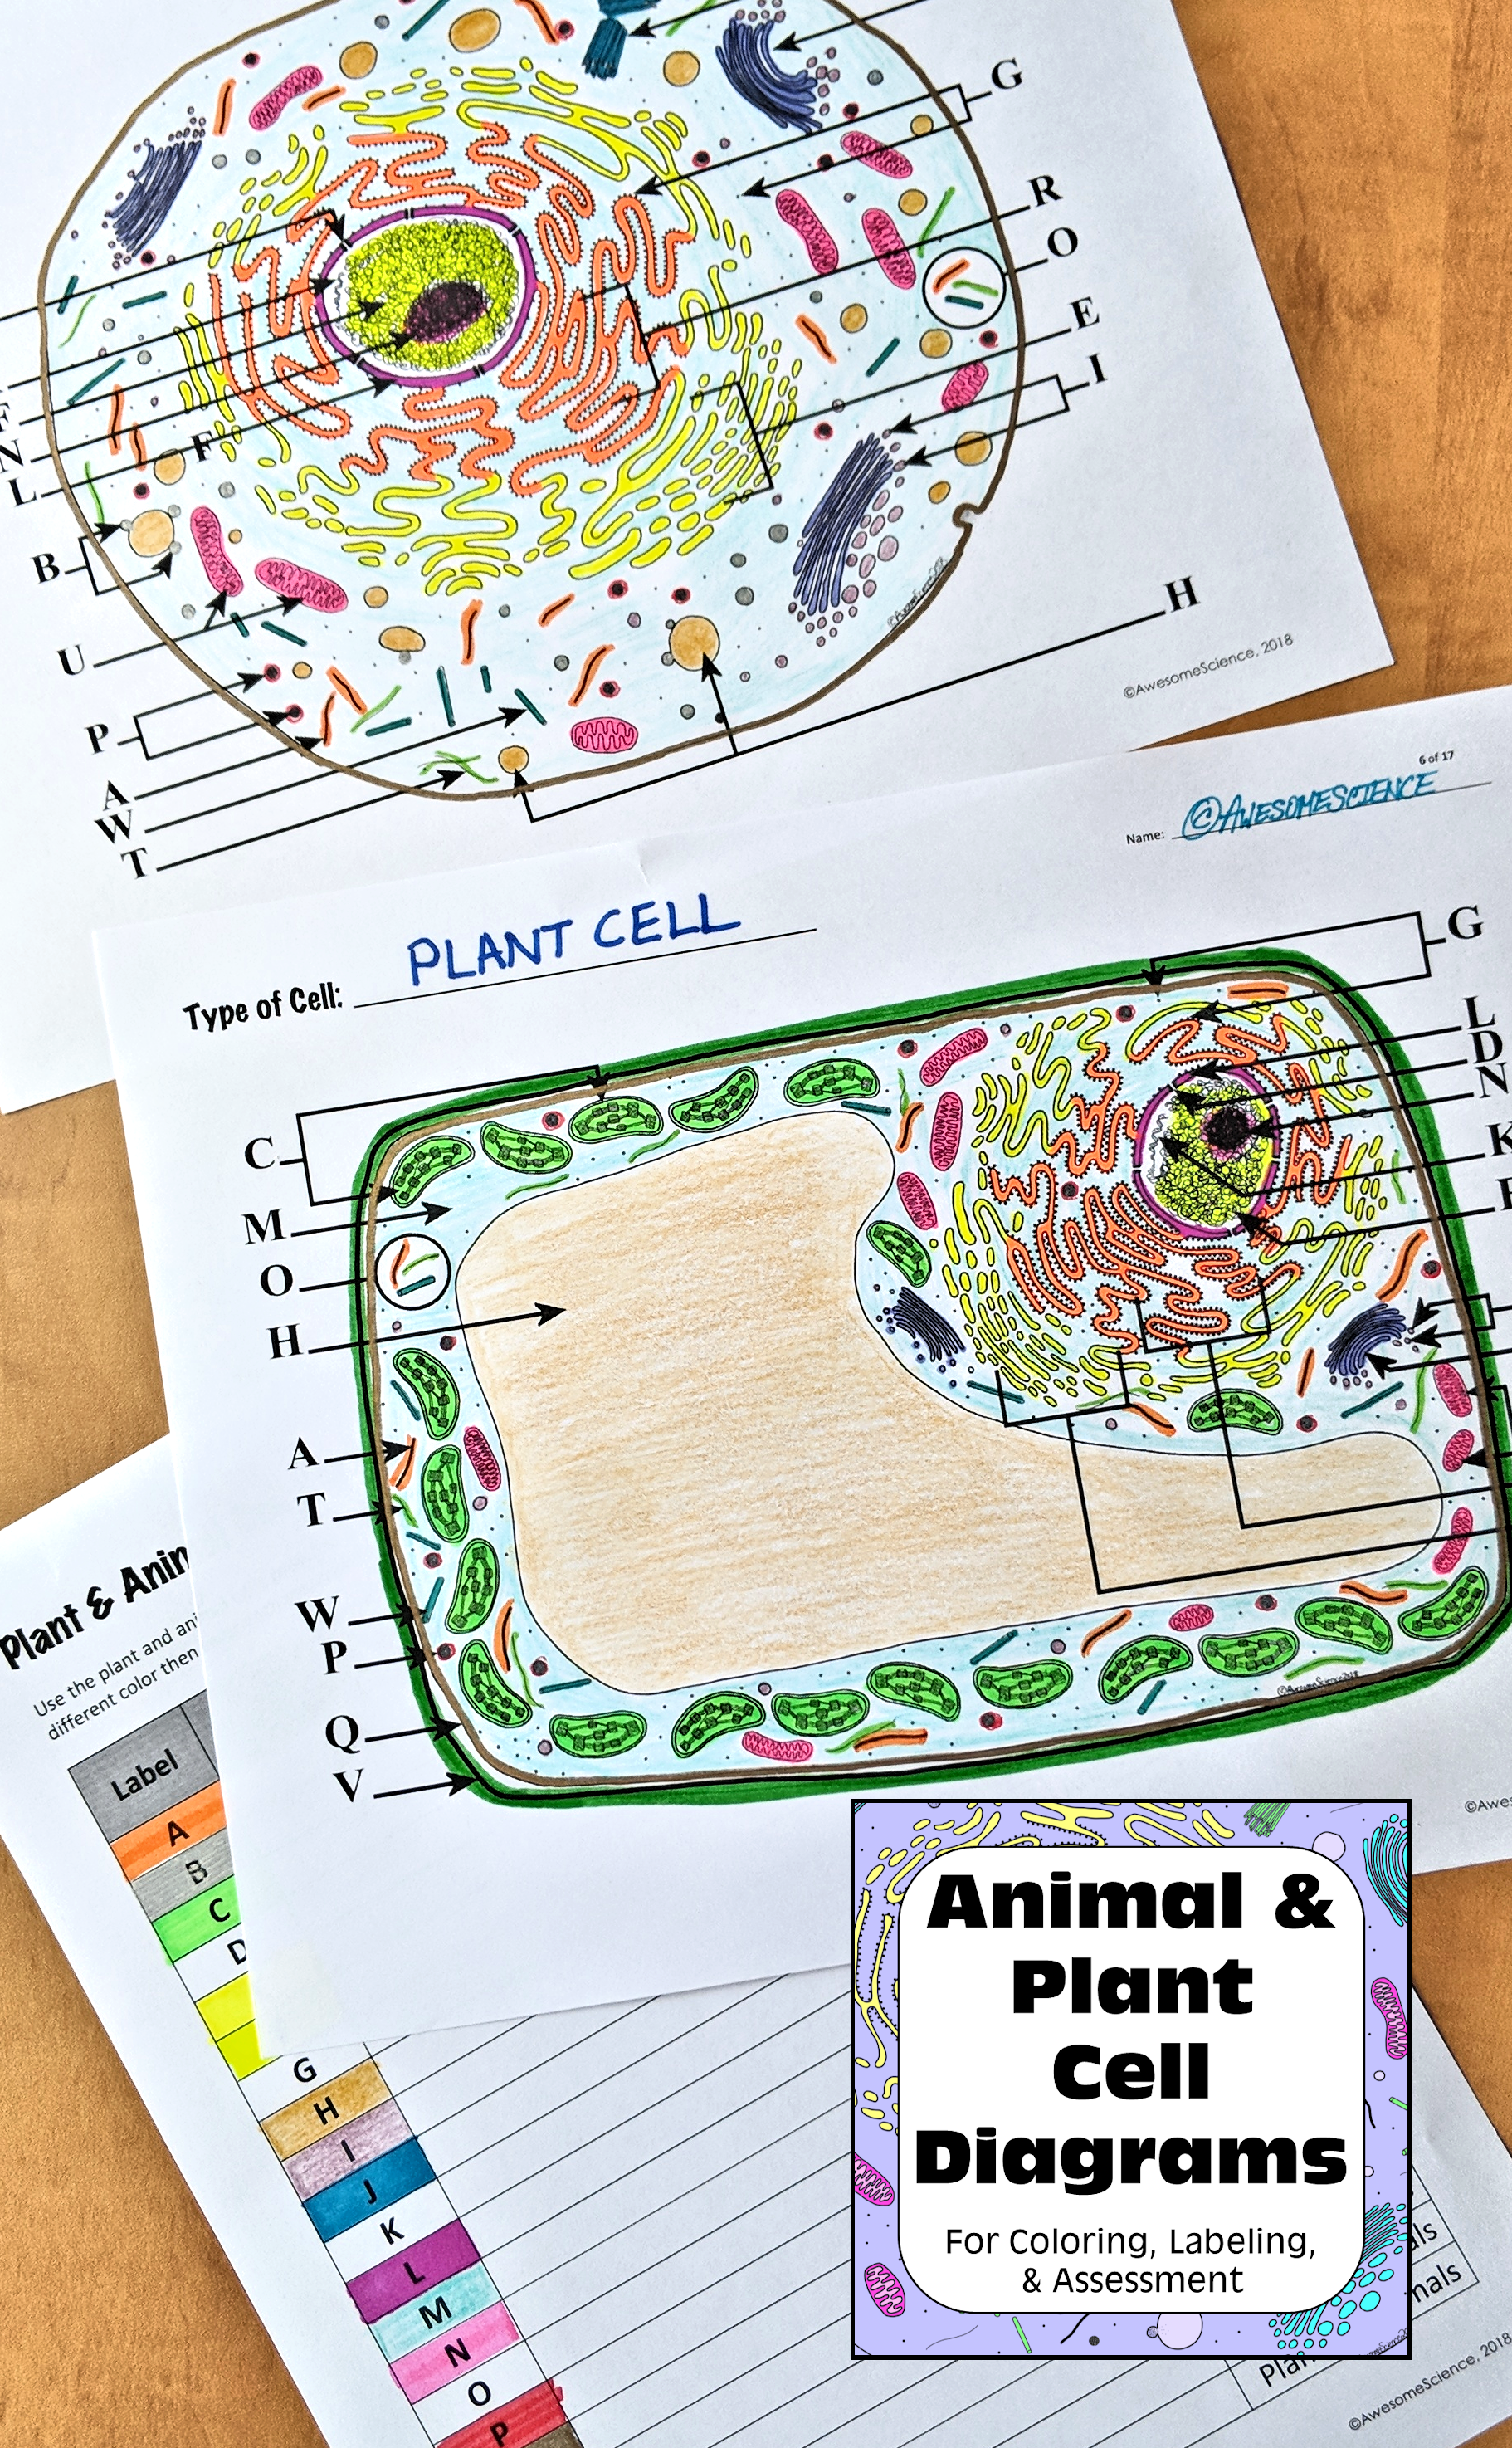 small resolution of plant cell animal cell diagrams perfect for middle school or high school biology cell membrane plasma membrane cell wall centrioles chloroplasts